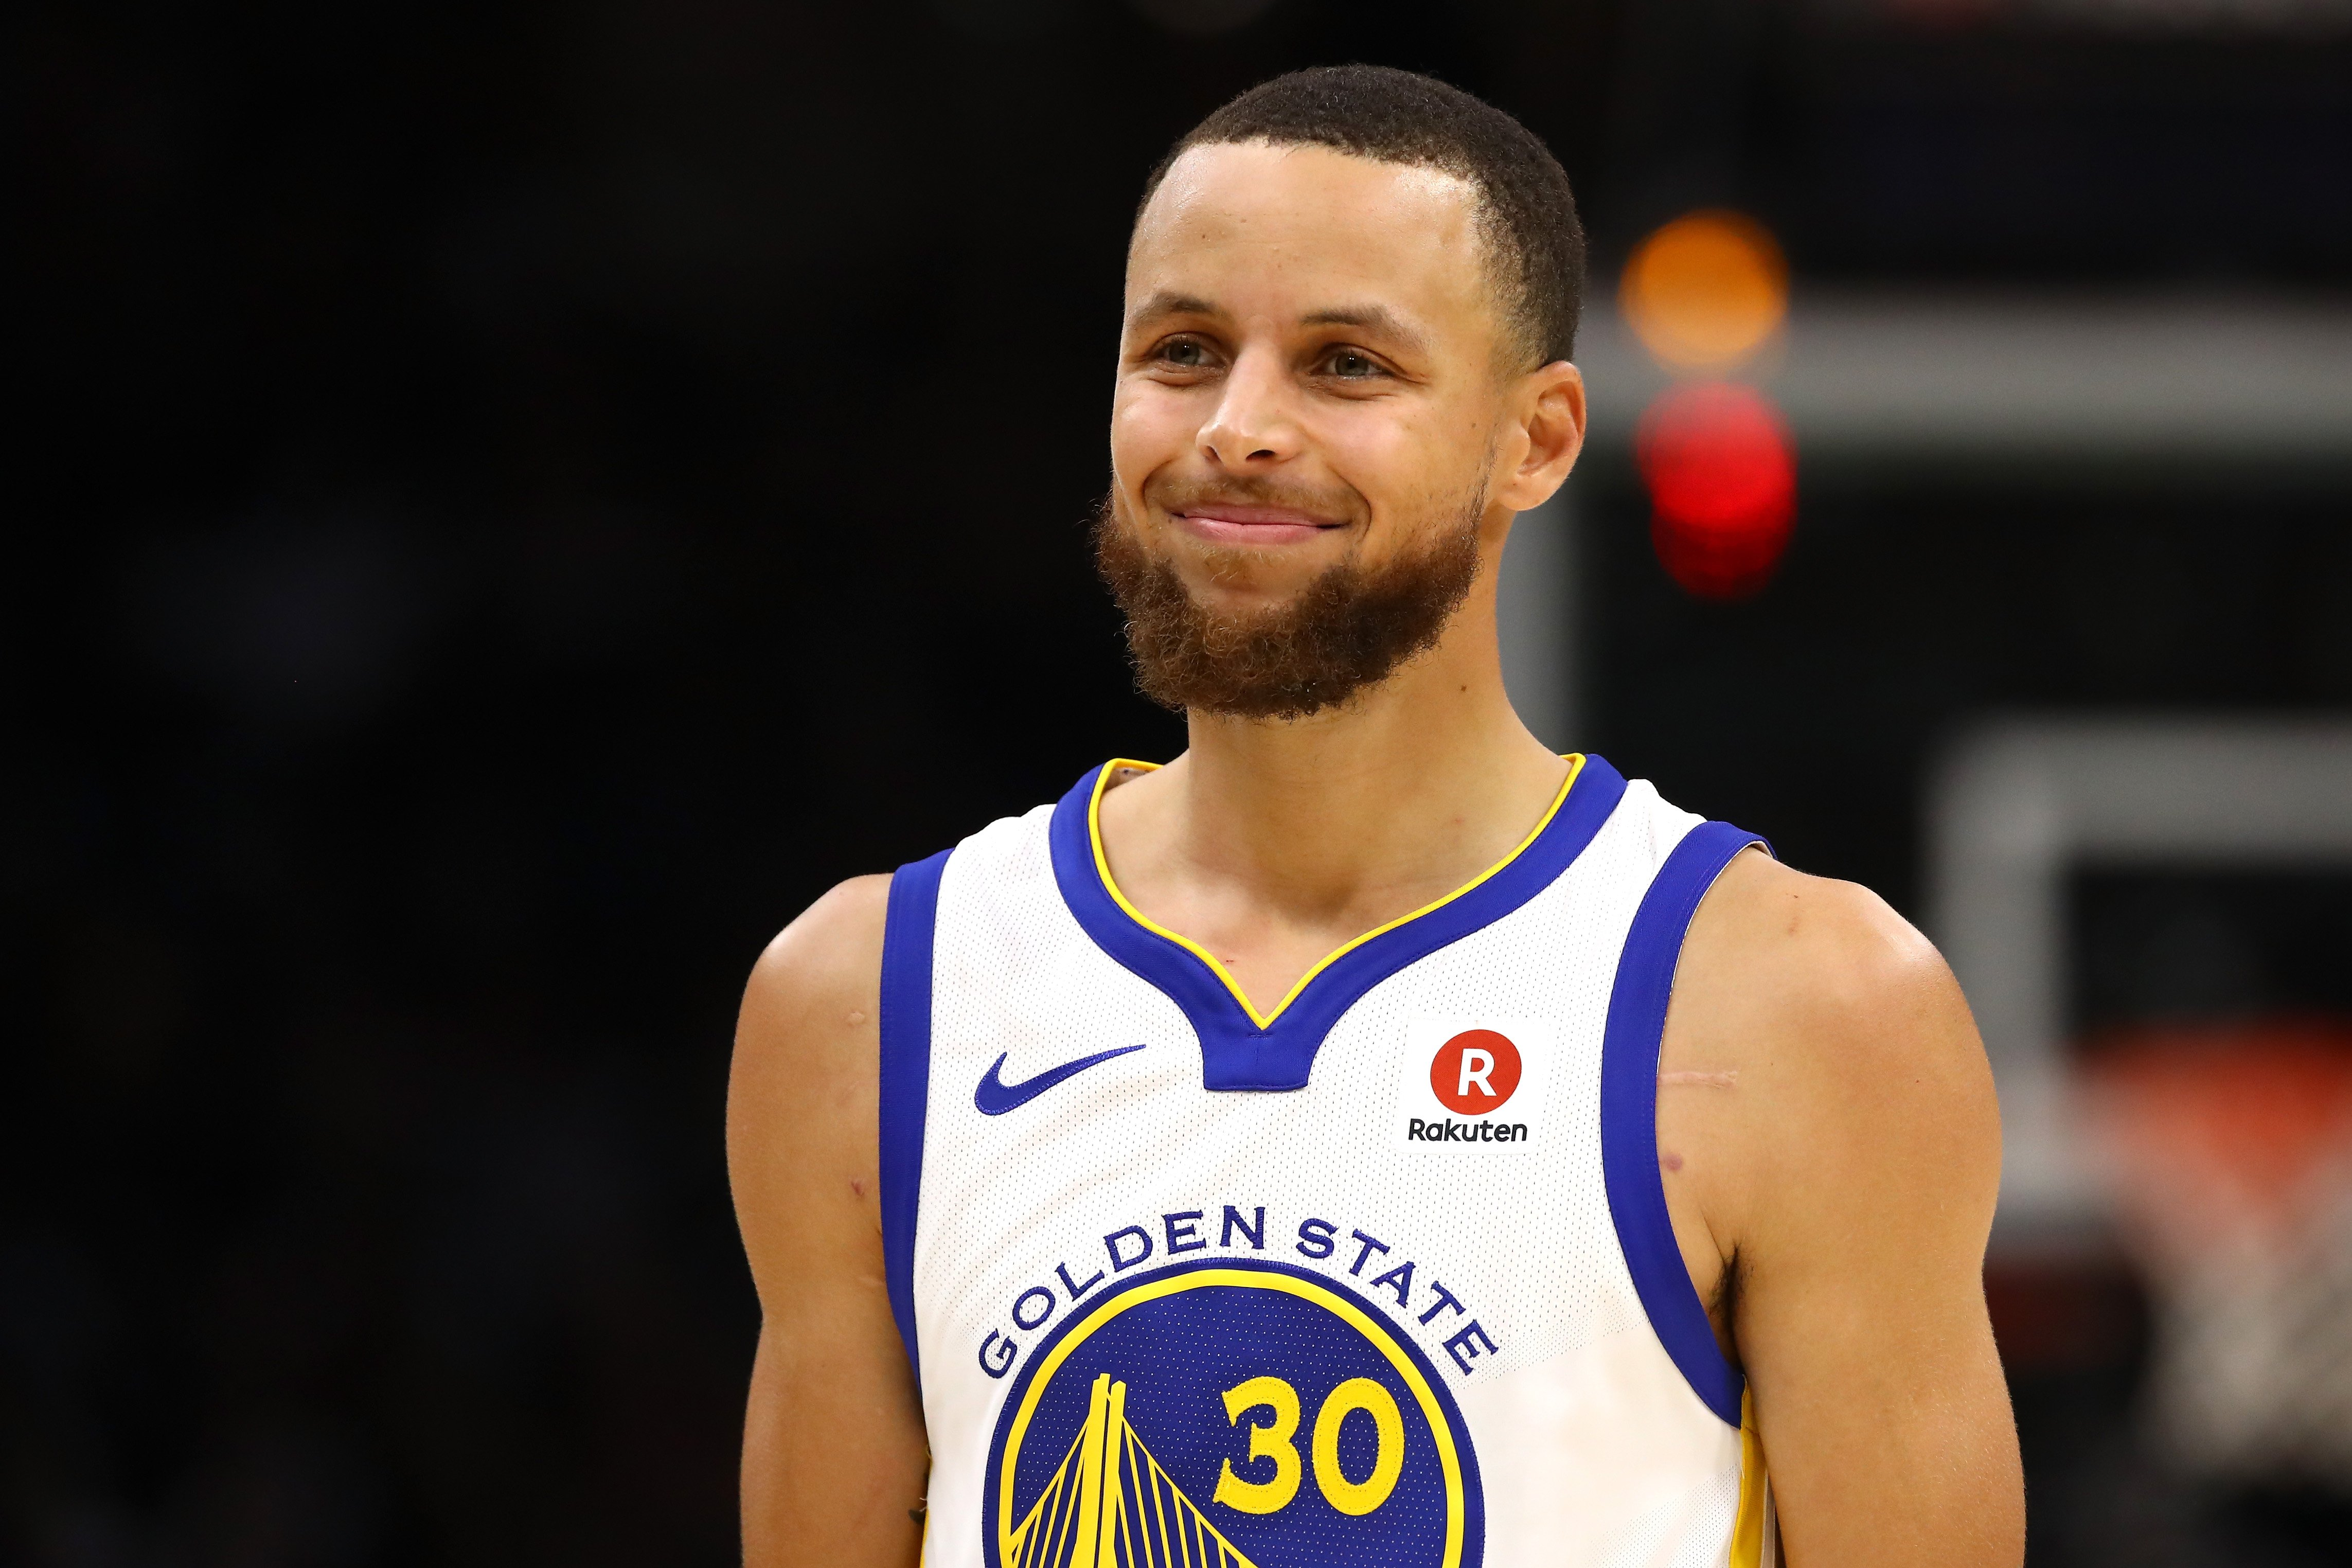 Stephen Curry during a game against the Cleveland Cavaliers at the 2018 NBA Finals on June 8, 2018   Photo: Getty Images